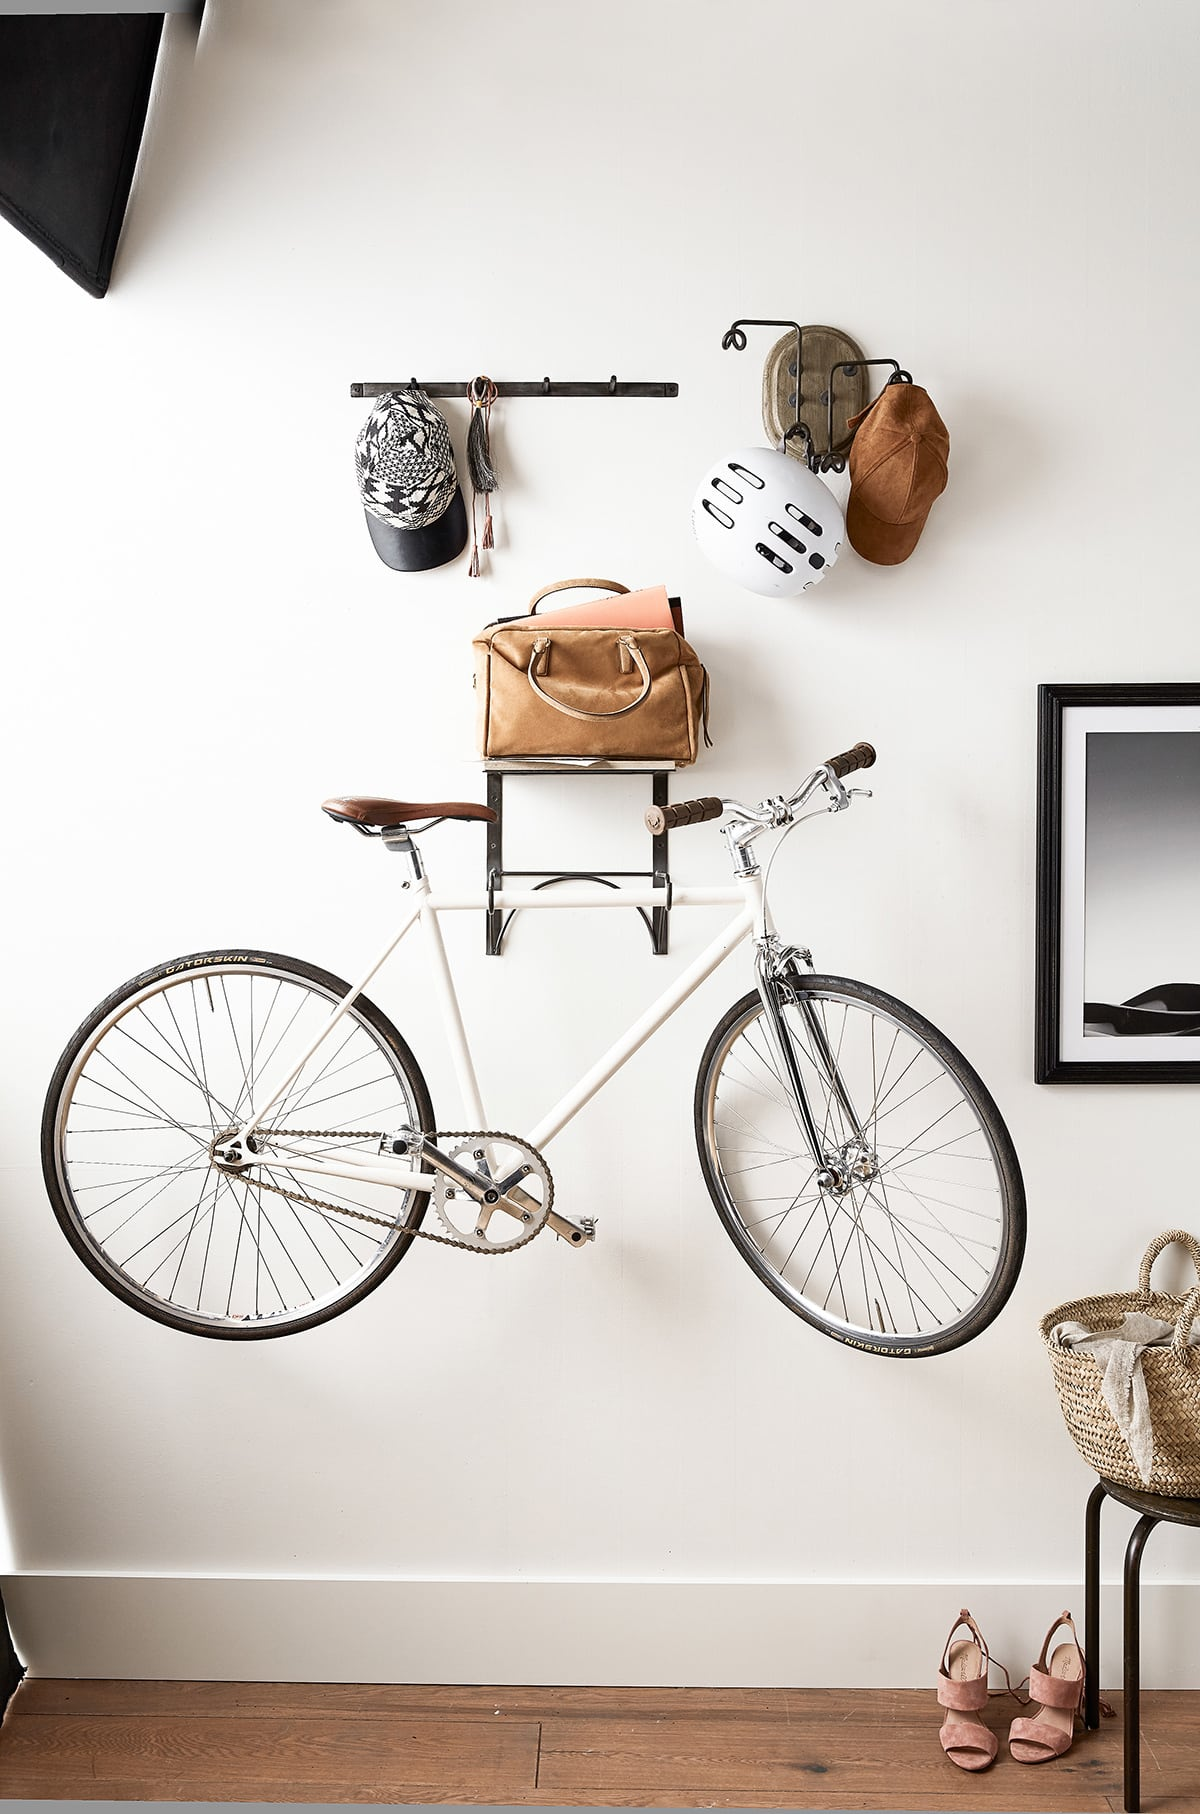 wall mounted bike rack inside front door with helmets and bag